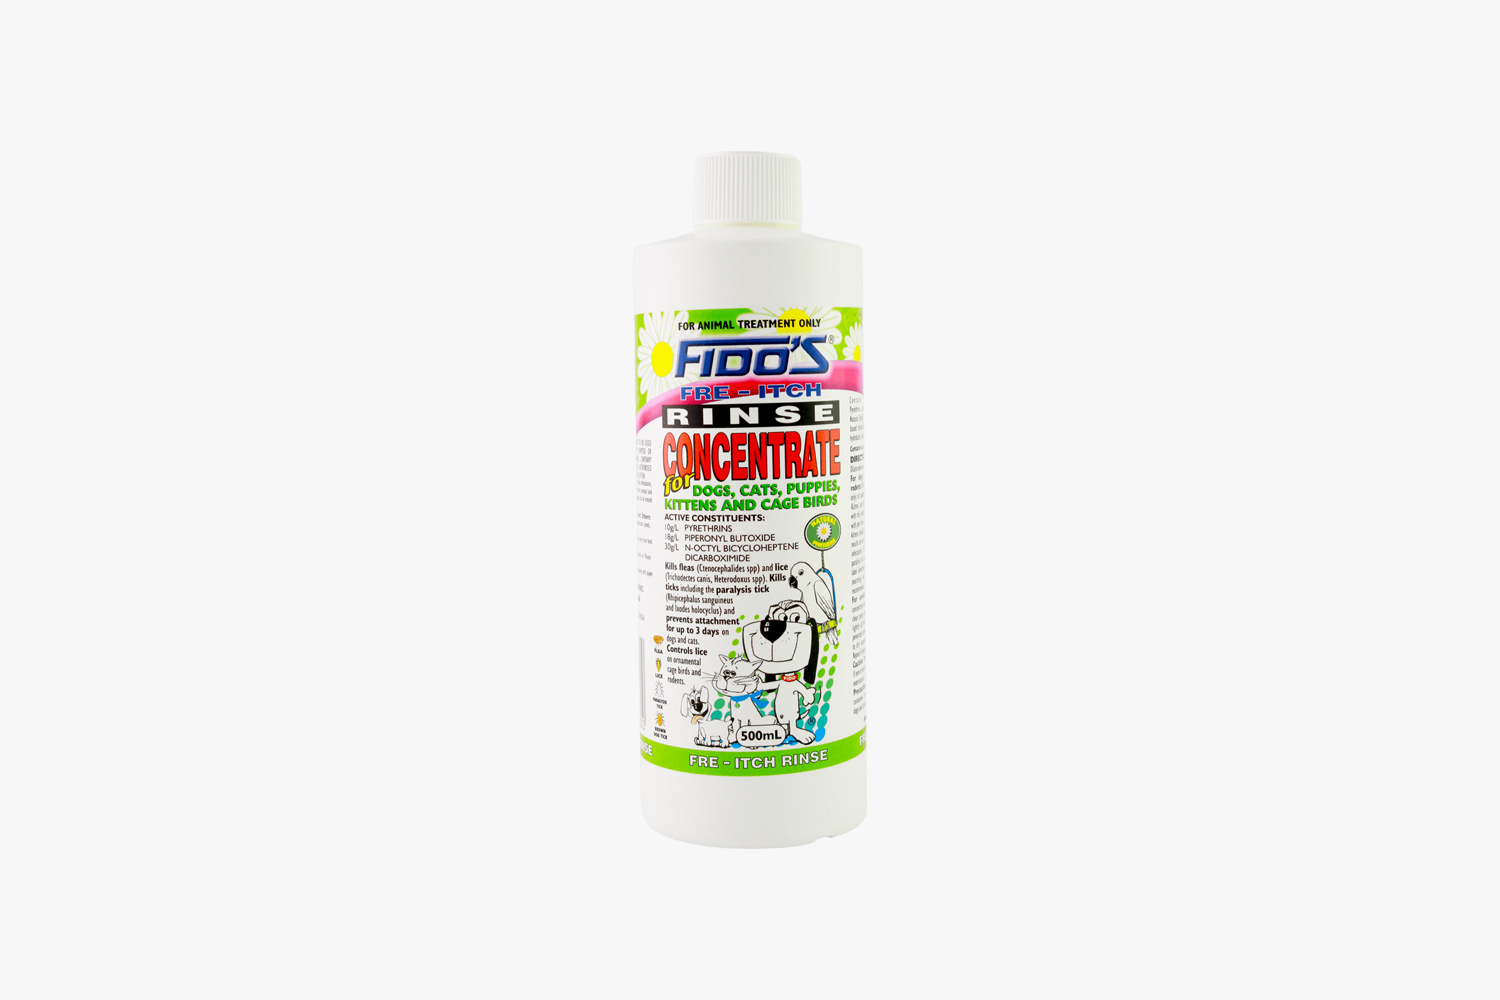 Fido's Fre Itch Rinse Concentrate